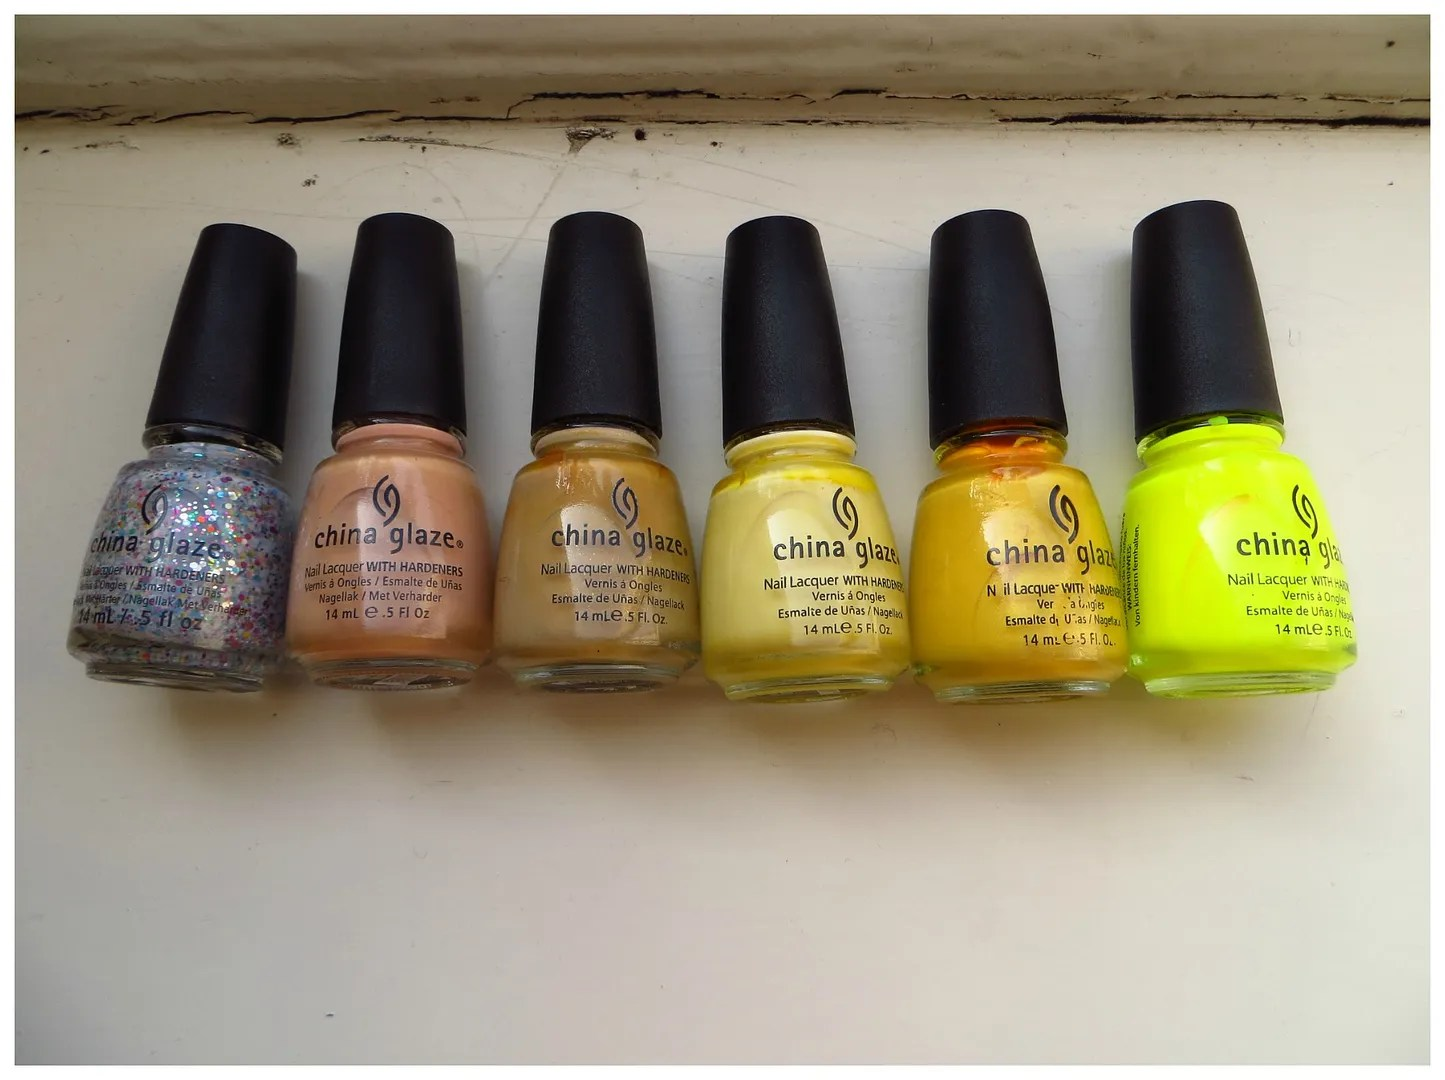 High end nail polish stash – Floating in dreams